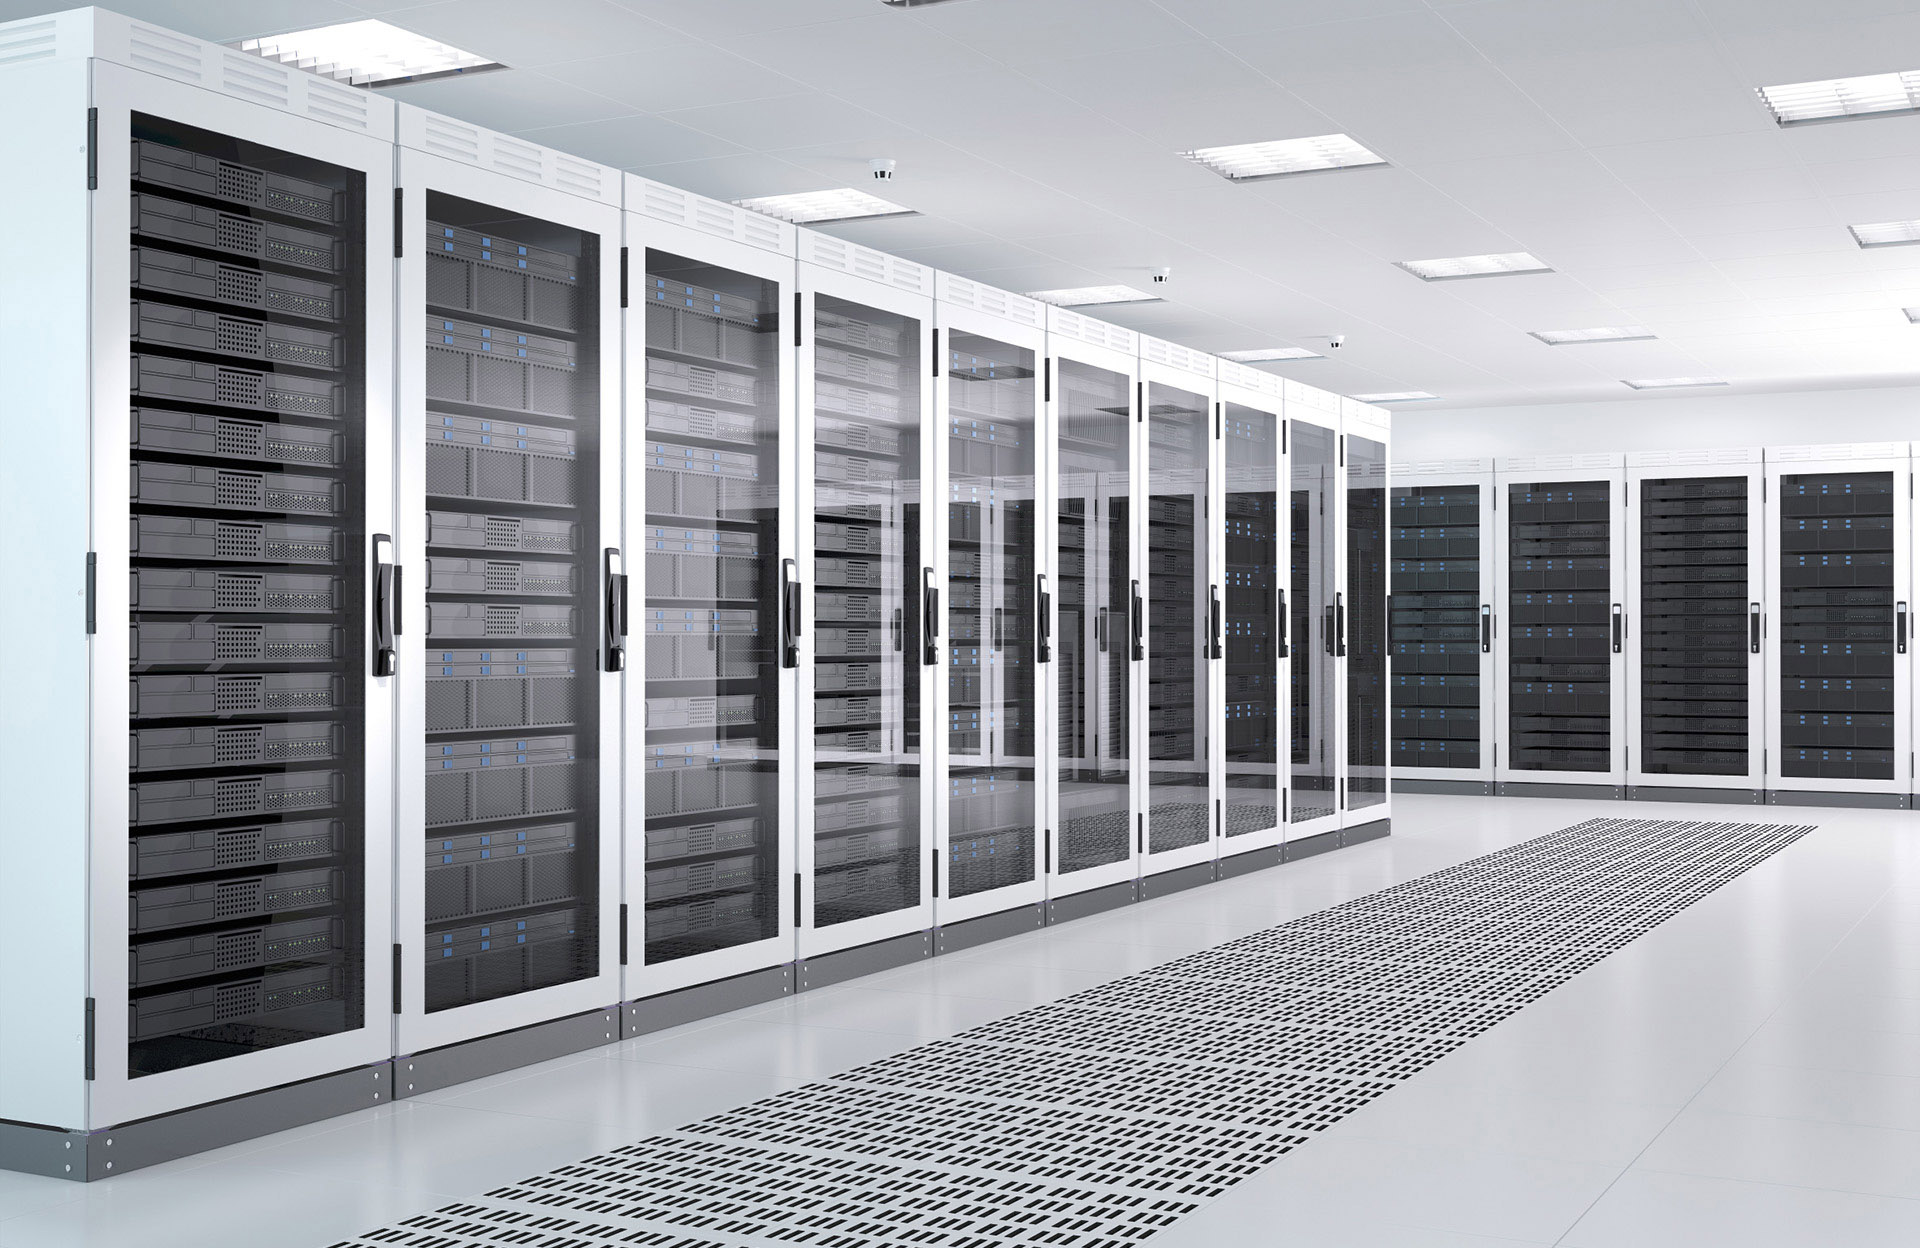 Small and medium data centers